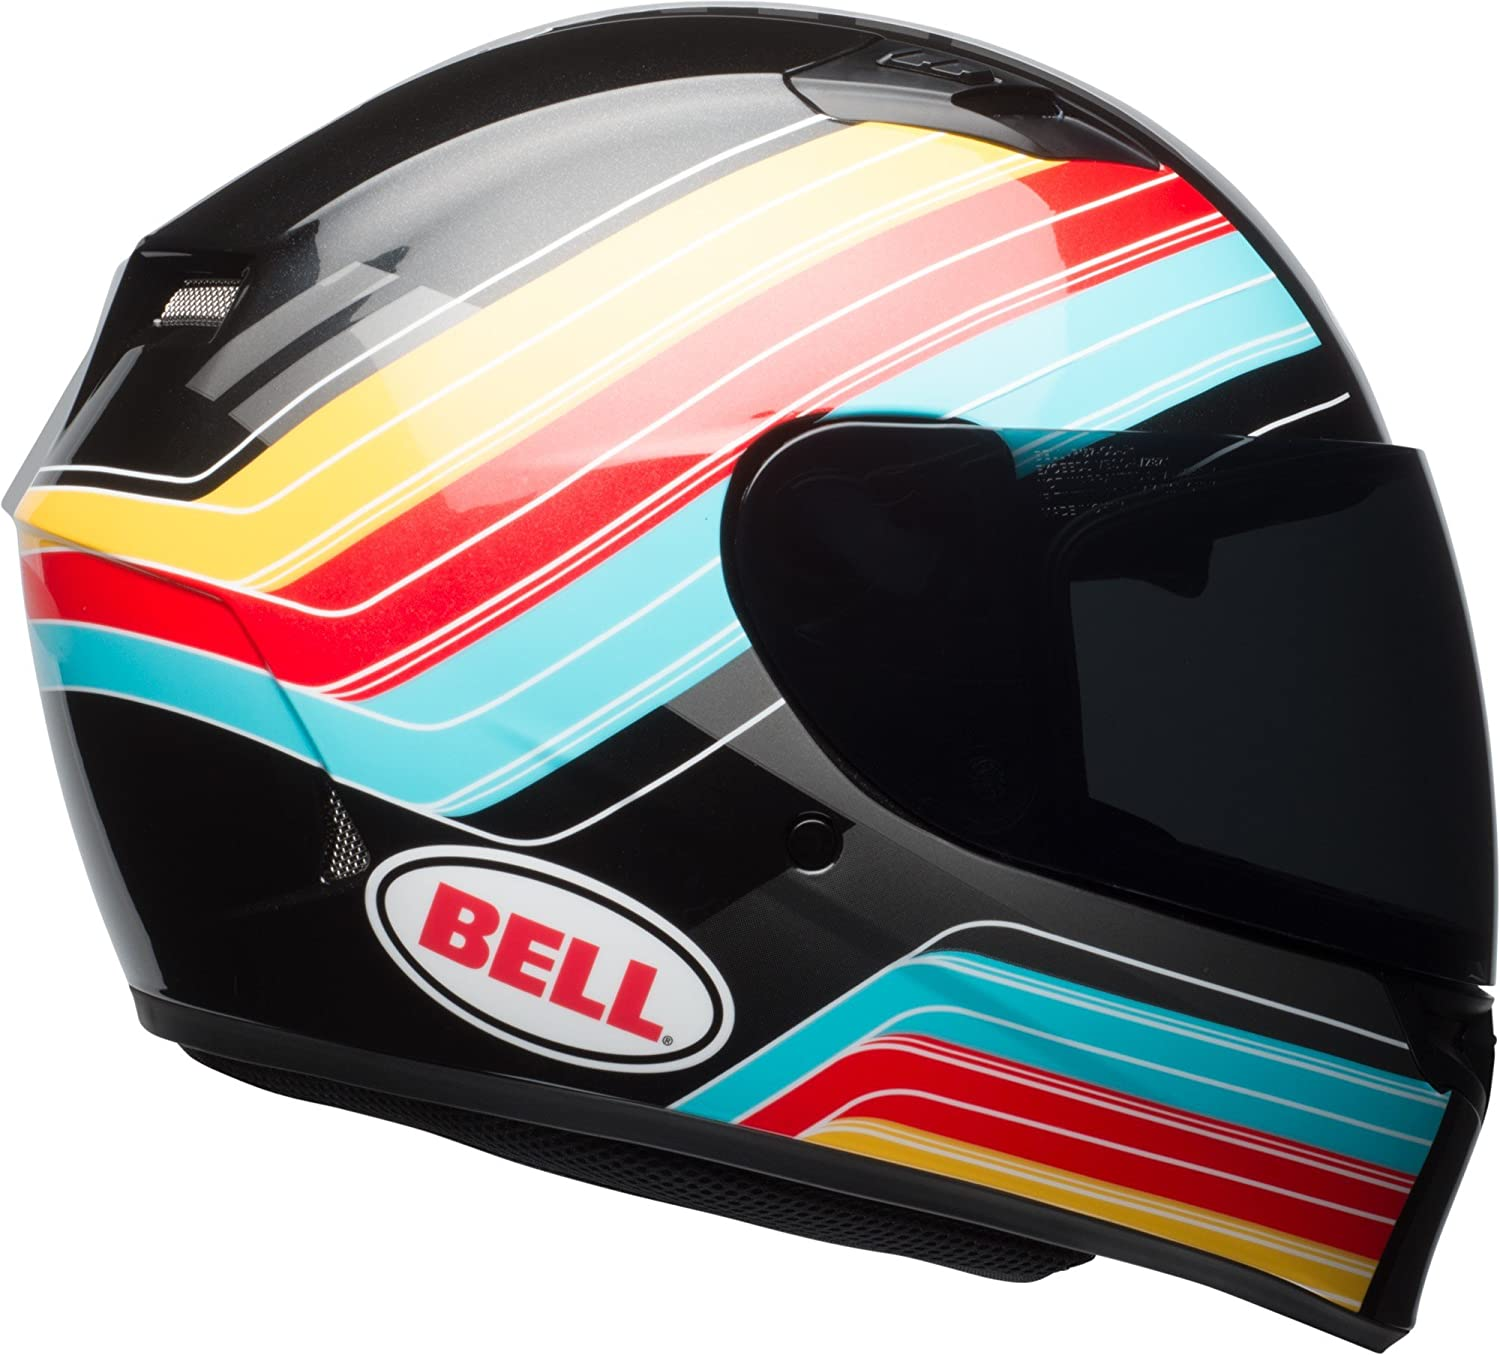 Amazon.com: Bell Qualifier Command Full-Face Motorcycle Helmet (Gloss Blue/Red/Yellow, X-Small): Automotive